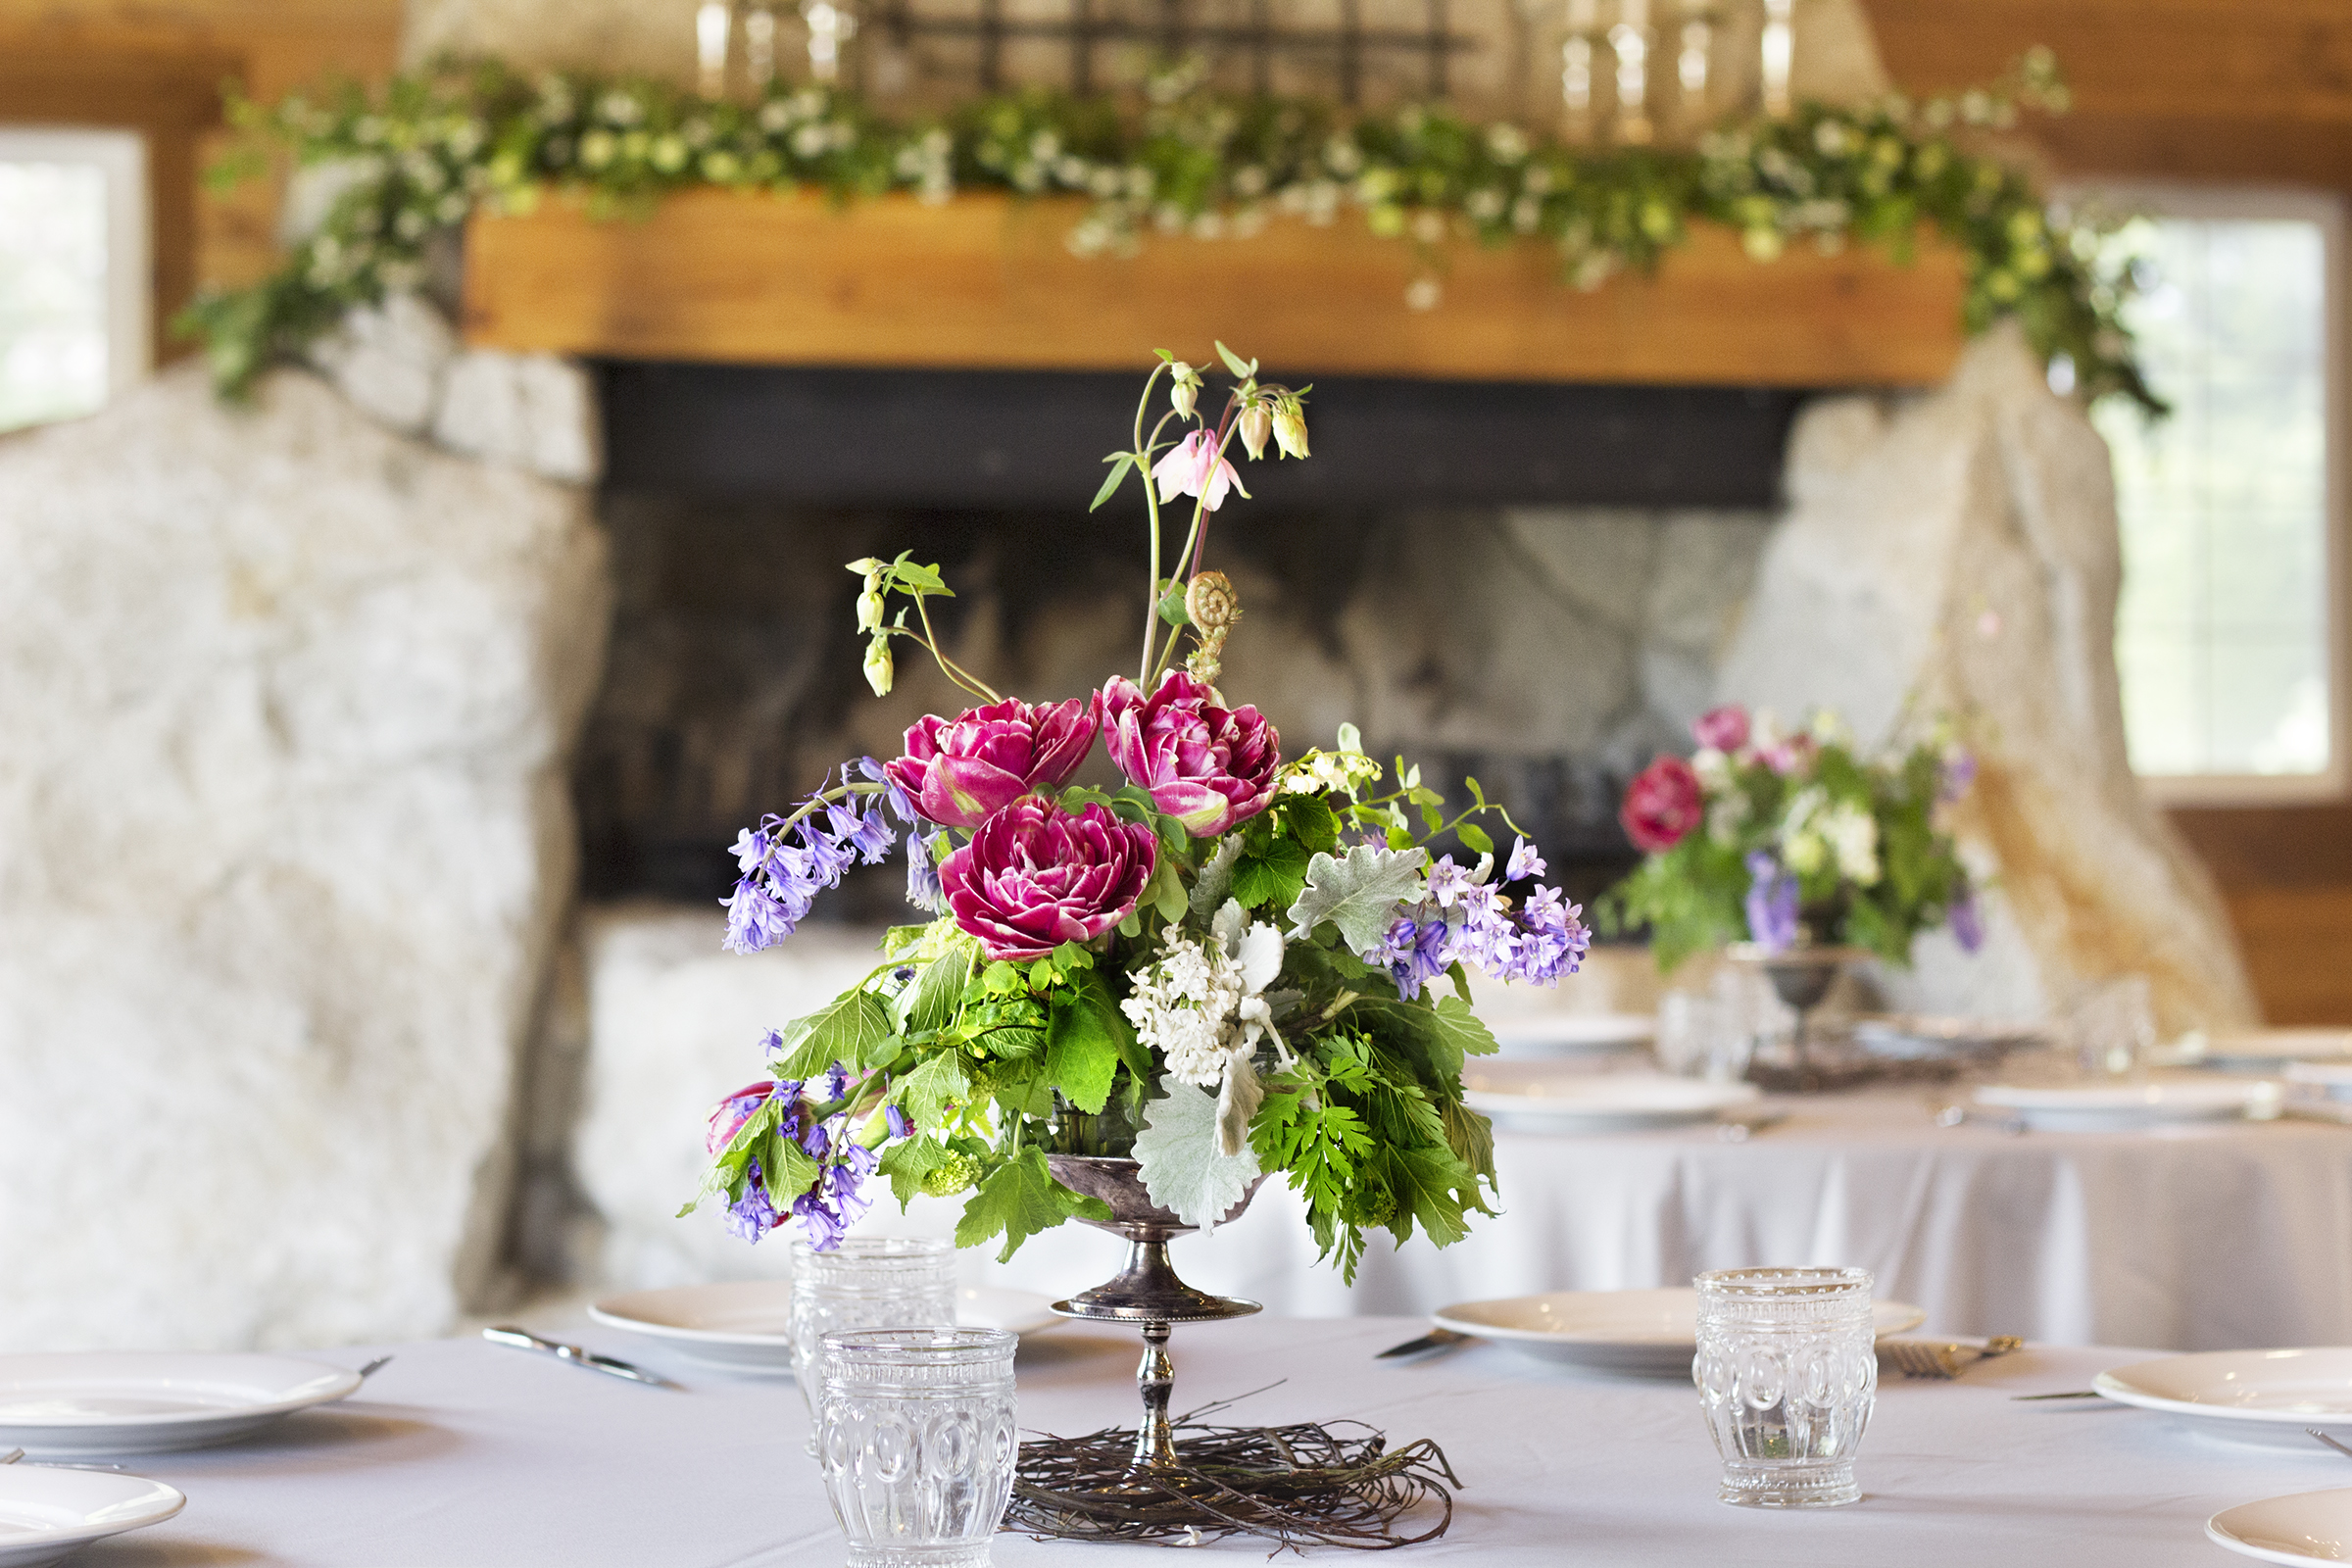 reduced_ss_bouquet_event_building_fireplace_tulips.jpg